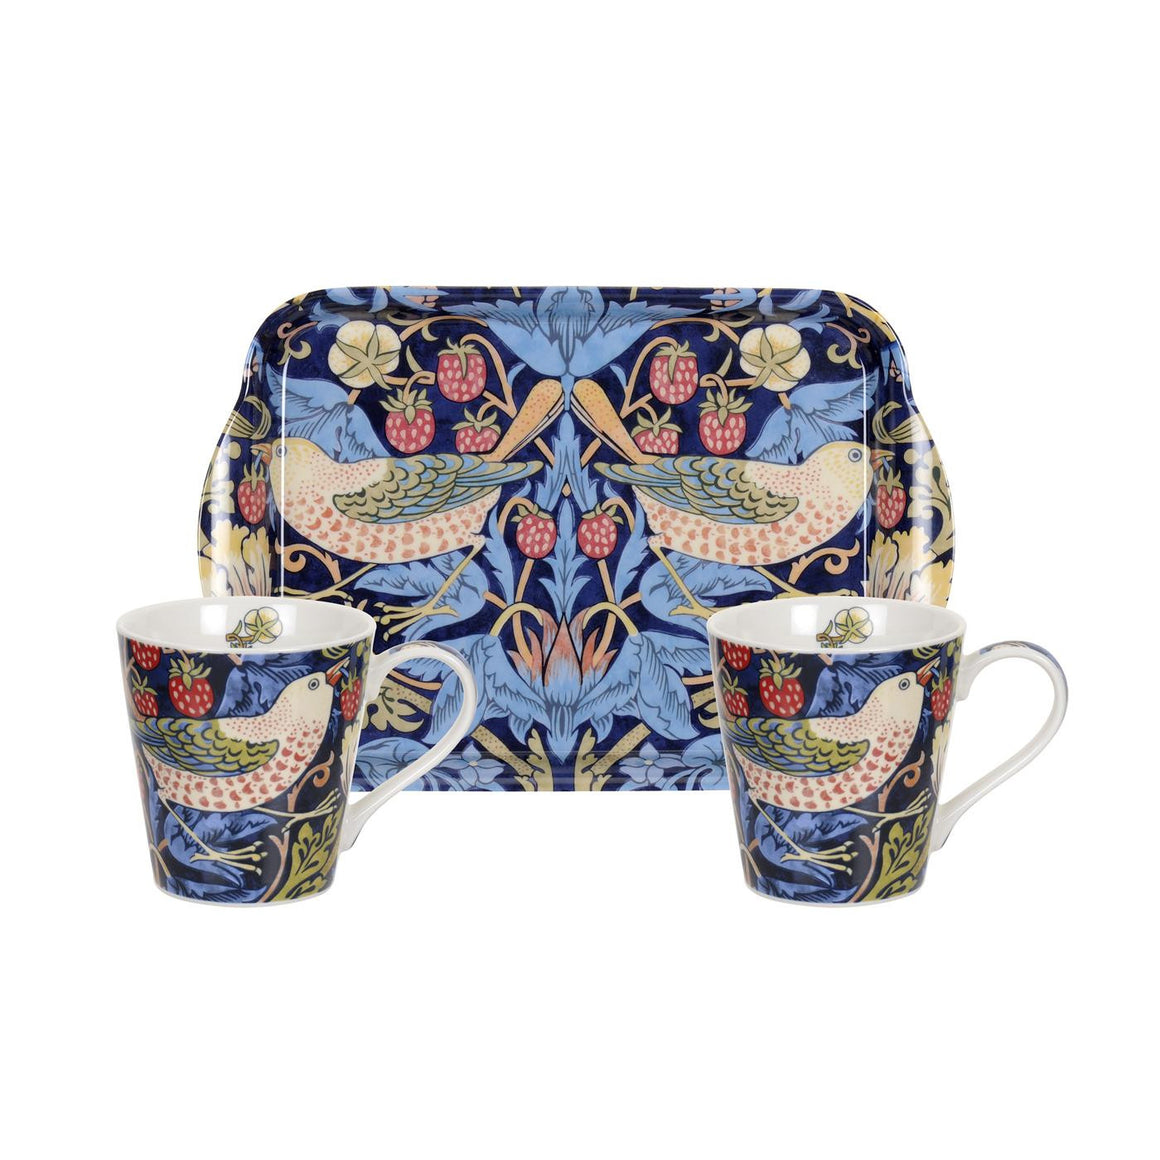 Pimpernel Strawberry Thief Blue Mug and Tray Set